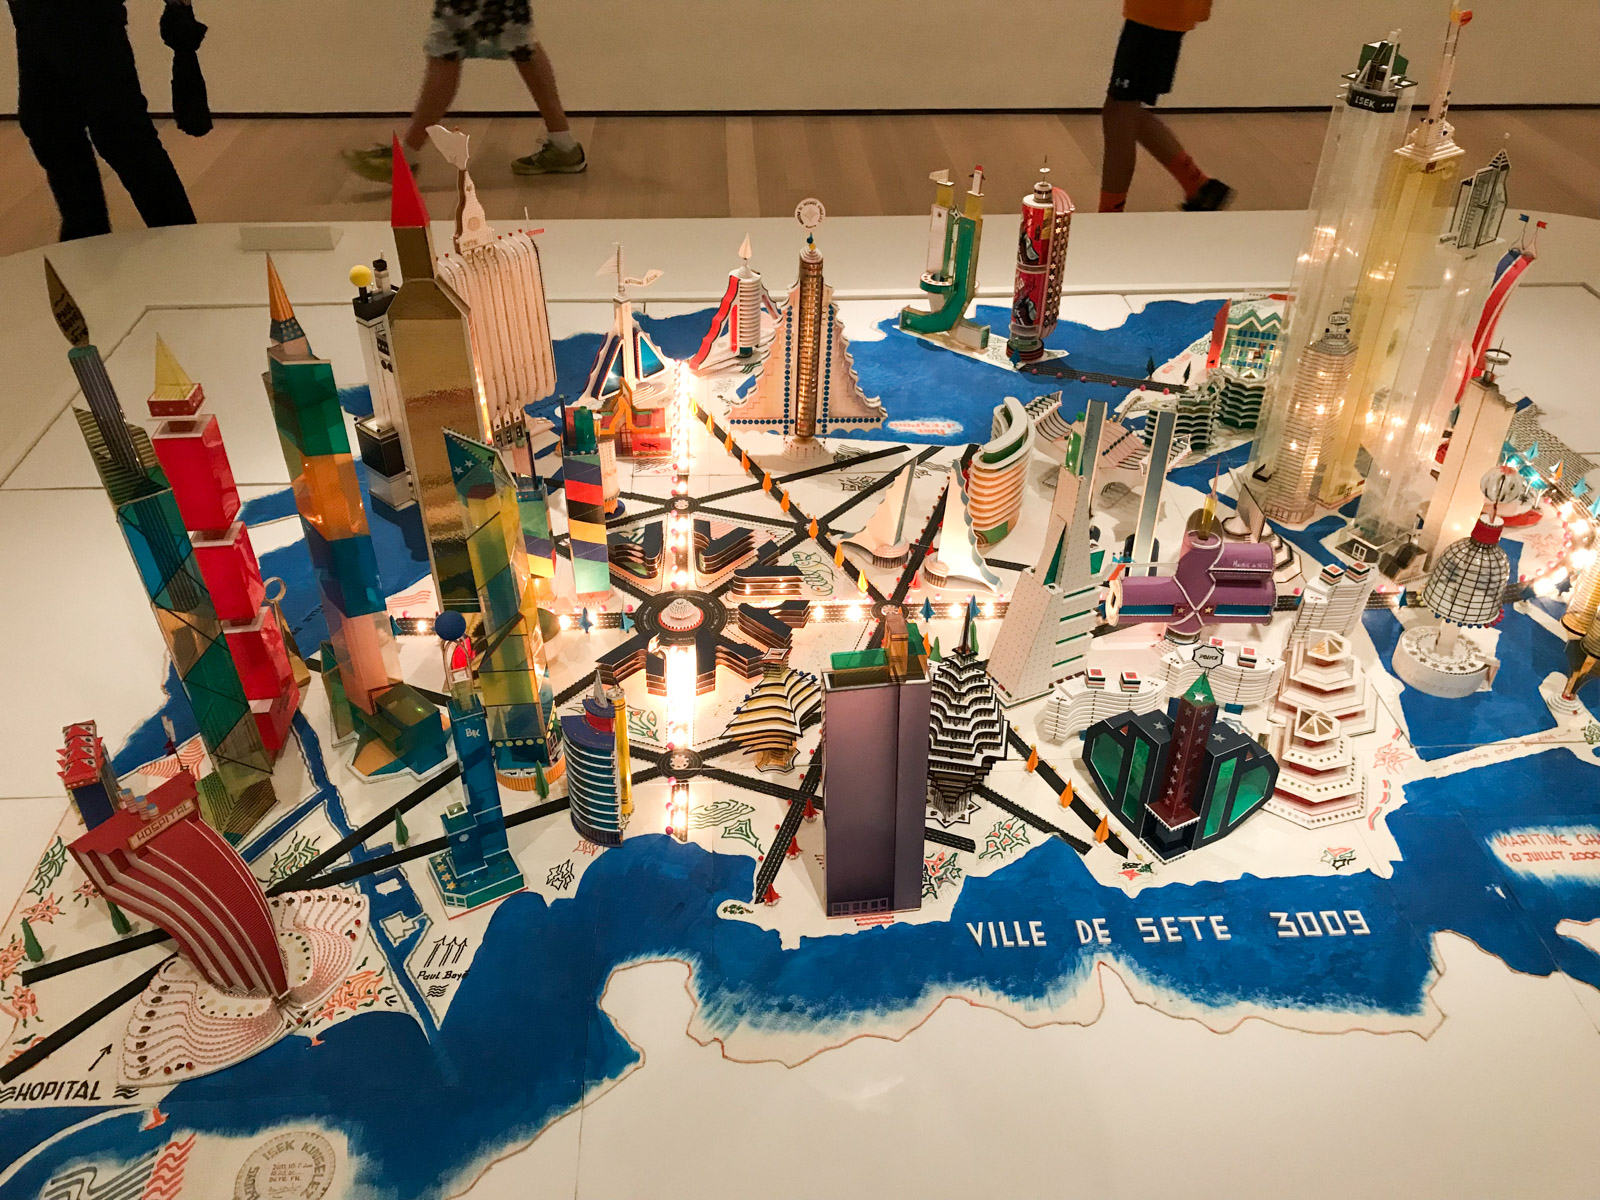 A high angle view of a sculpture made out of mostly coloured cardboard, assembled together like a city on an island